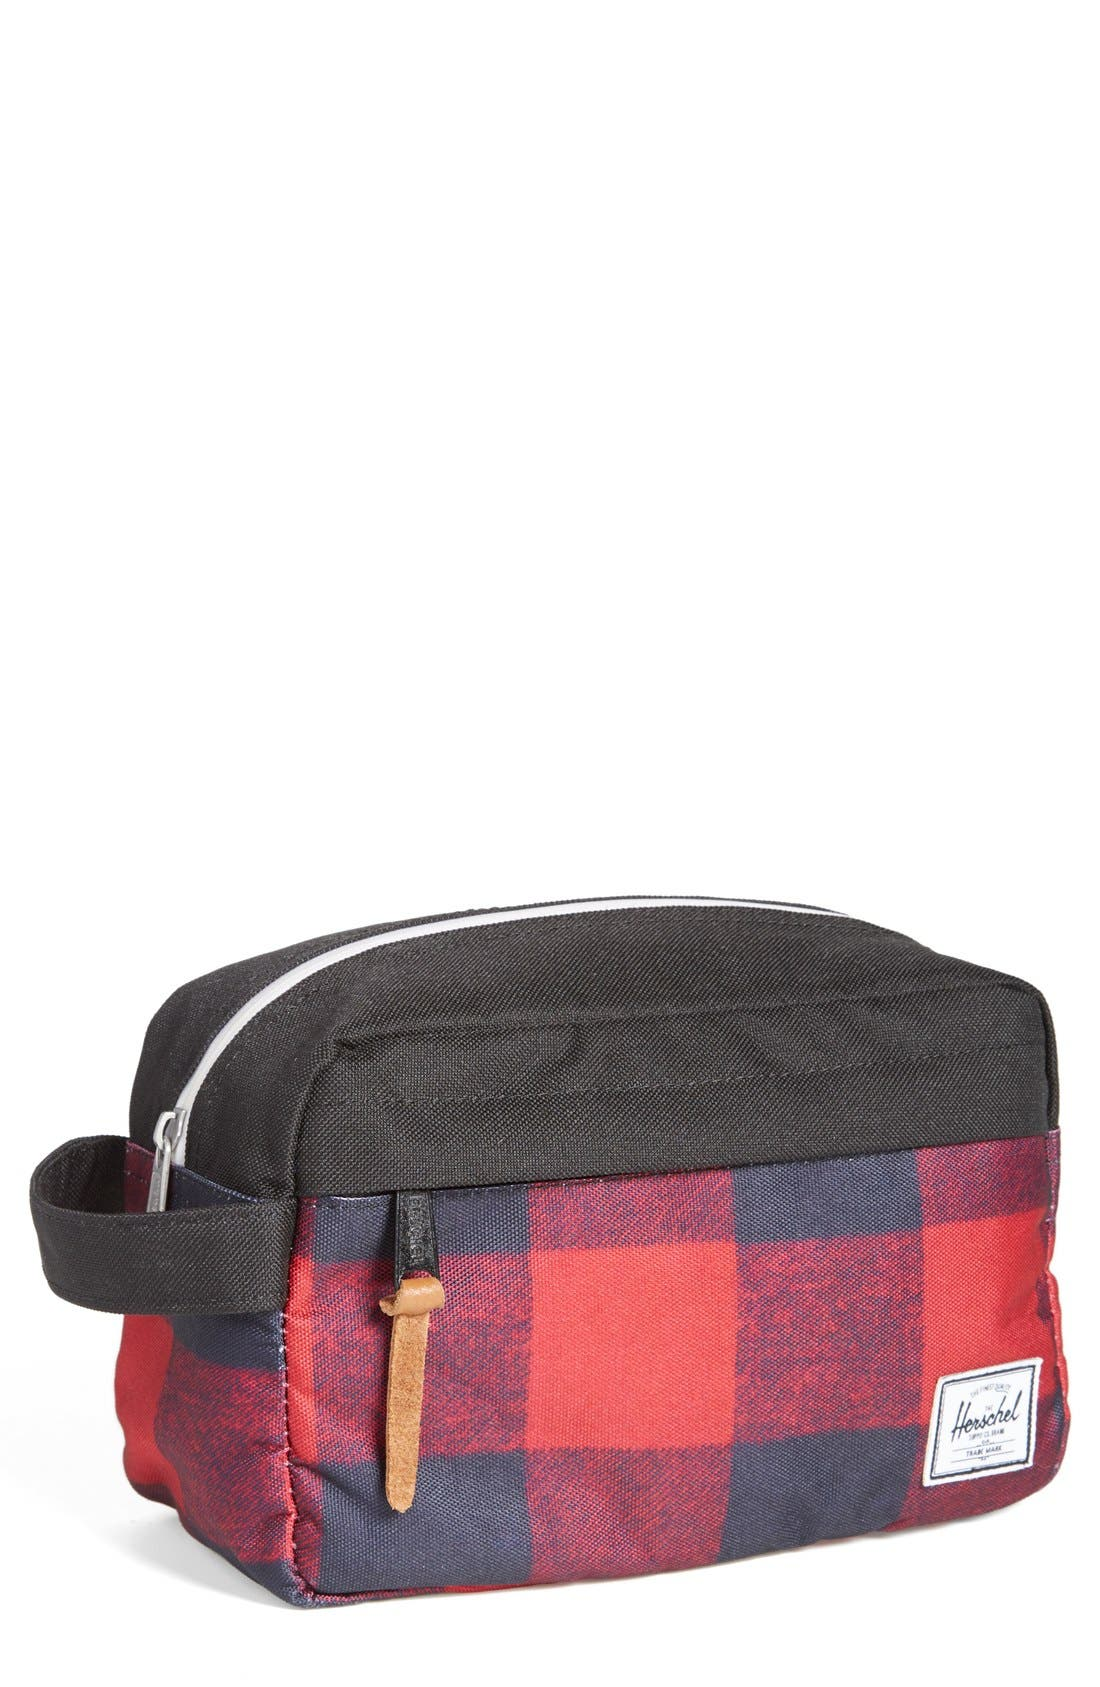 Alternate Image 1 Selected - Herschel Supply Co. 'Chapter Buffalo' Toiletry Kit